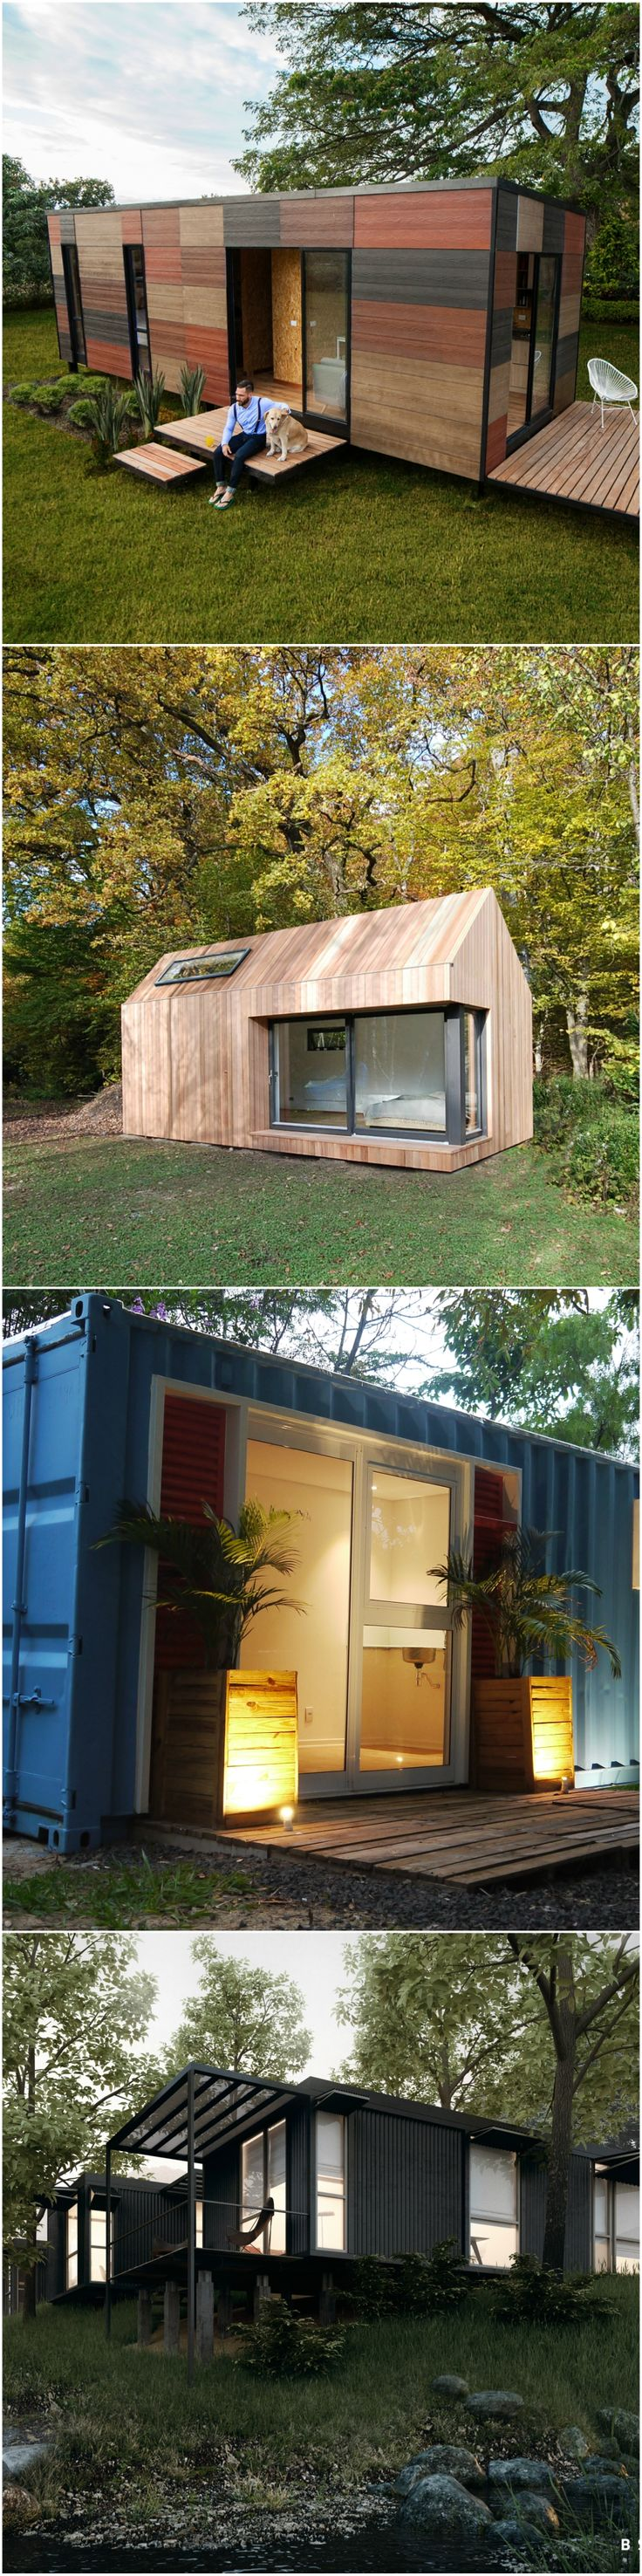 Buying a prefabricated house is similar to buying different pieces of furniture; it is developed in a different location, and once you are done selecting what you want, the finished pieces will be sent to your location, ready to be put together to create your snug home. This smart concept allows the architect houses & home builders to build a house in record time.